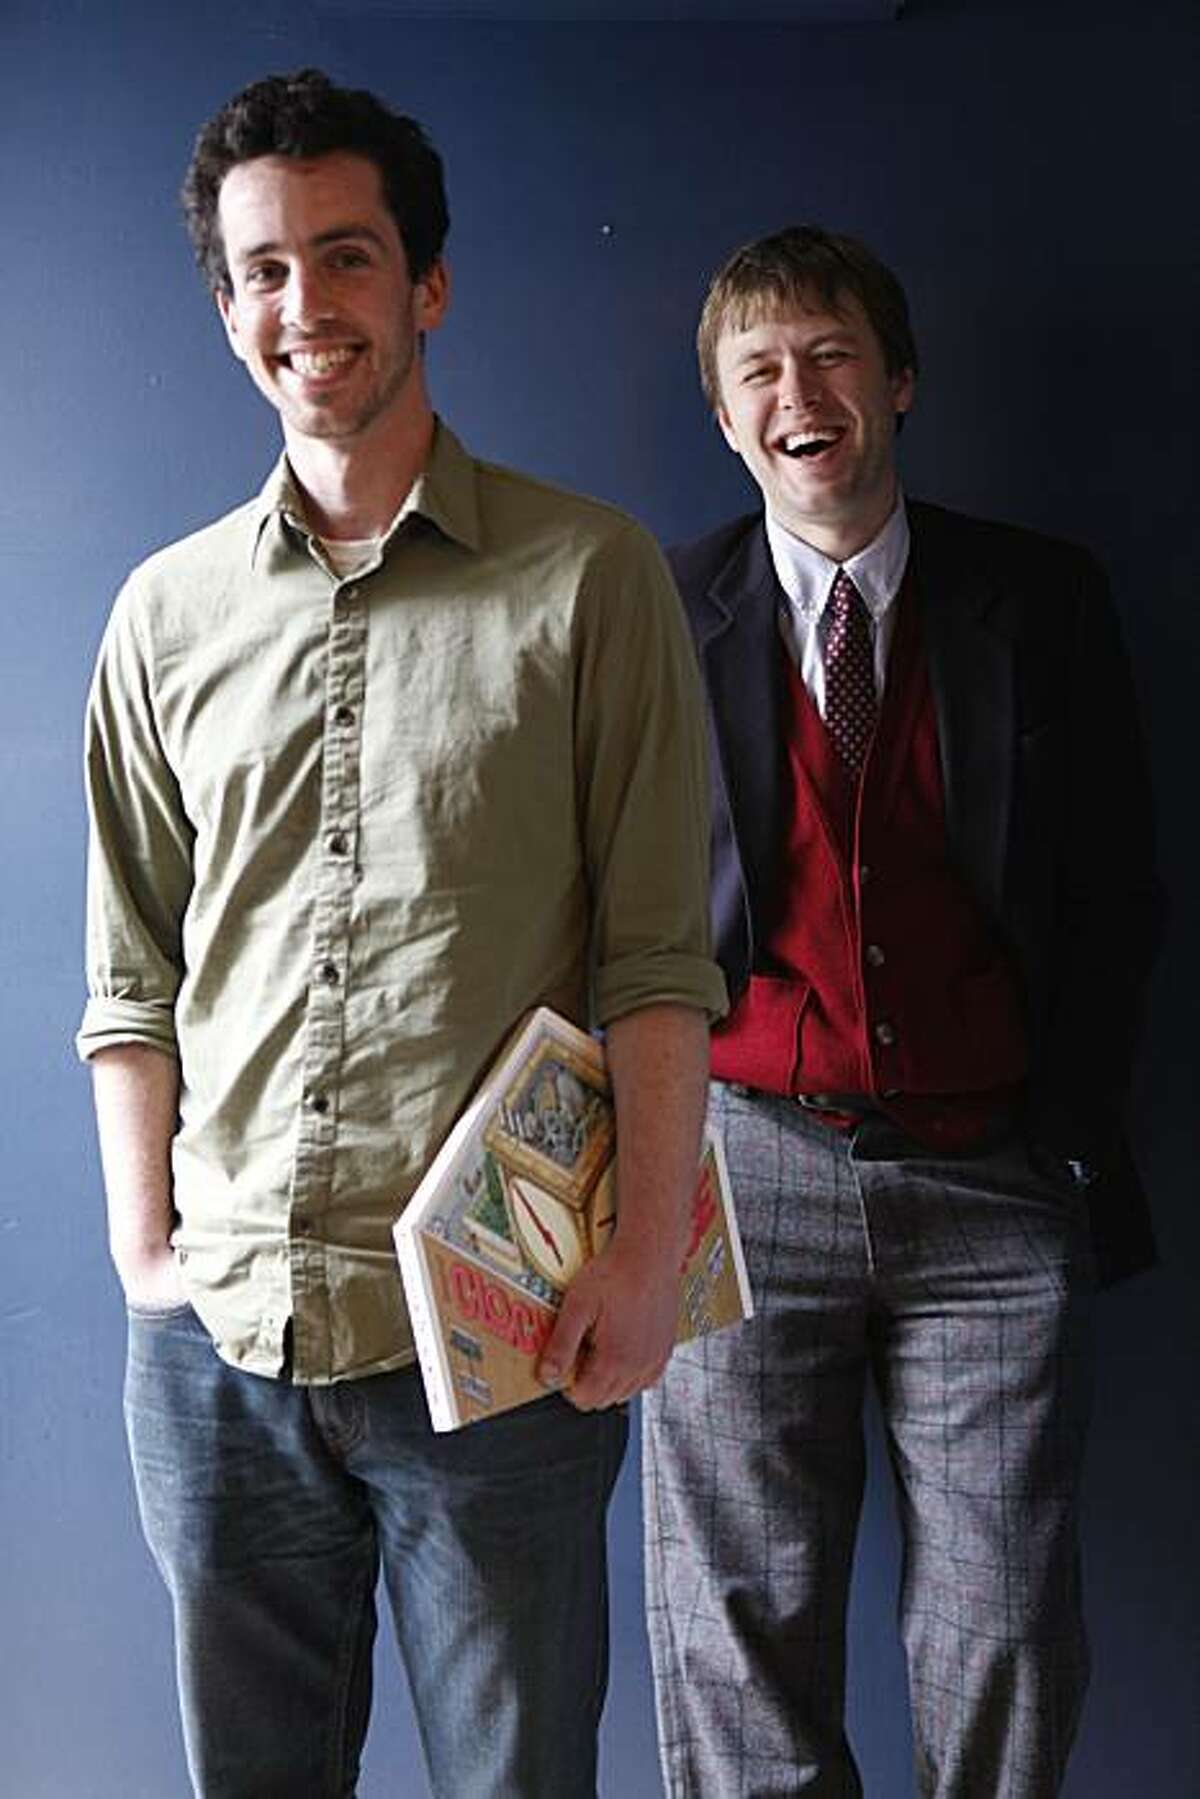 Eli Horowitz and Mac Barnett, authors of a new McSweeney's book called The Clock Without A Face, stand for a portrait at McSweeney's offices on Tuesday April 27, 2010 in San Francisco, Calif.